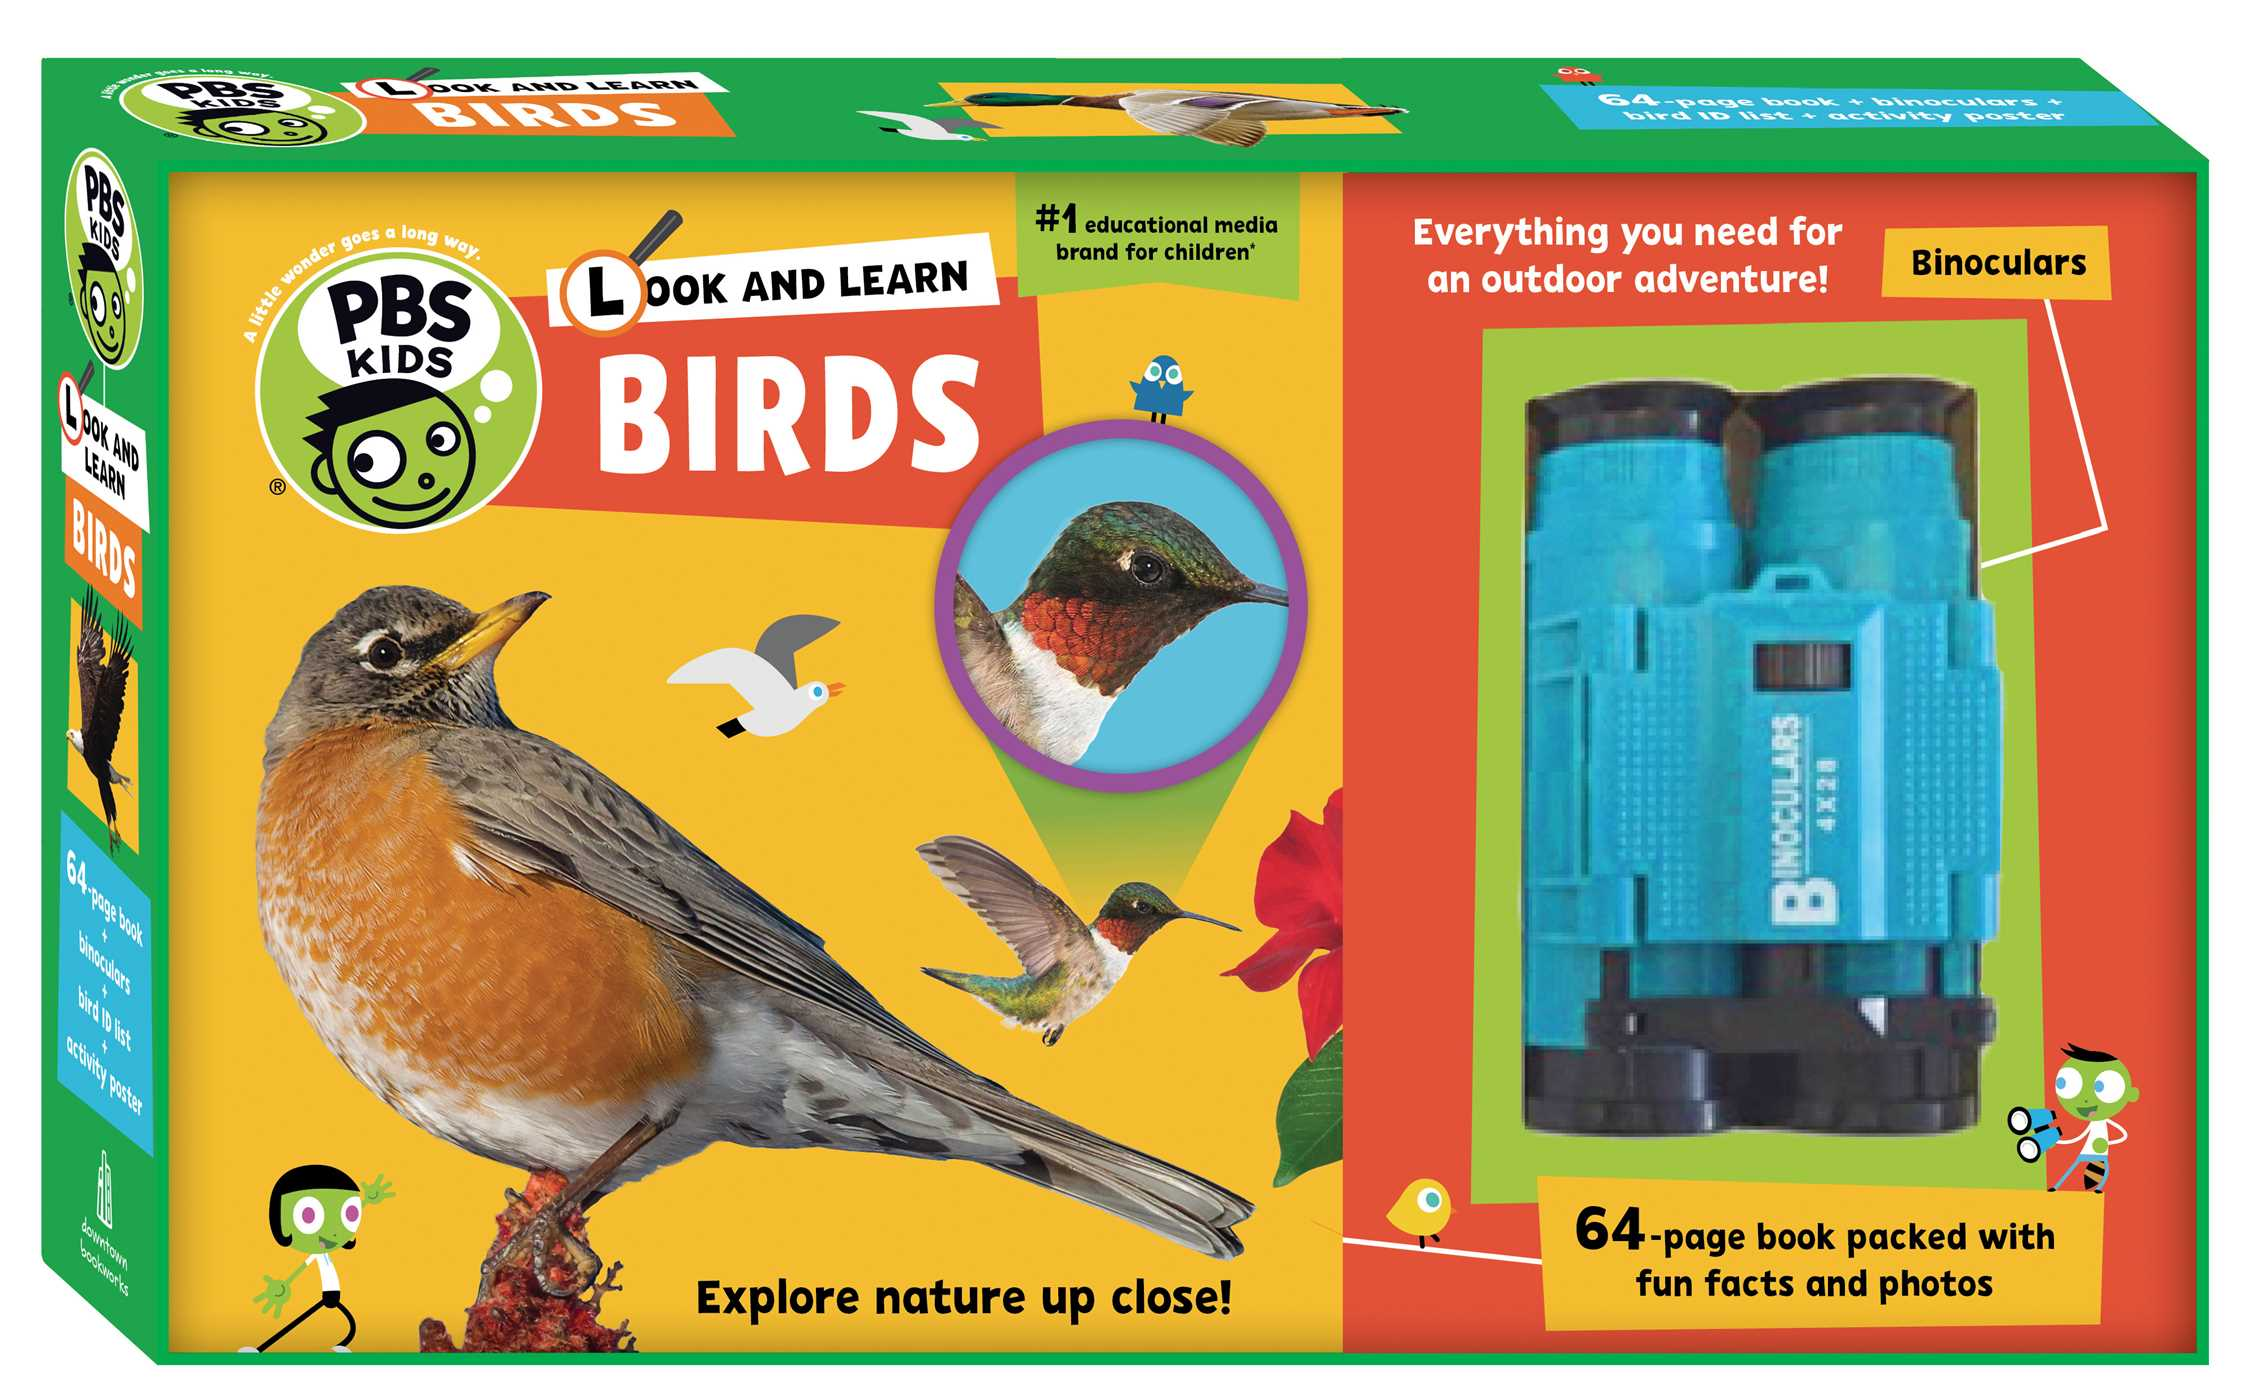 Look and Learn Birds (Book #7 of PBS Kids) By Sarah Parvis